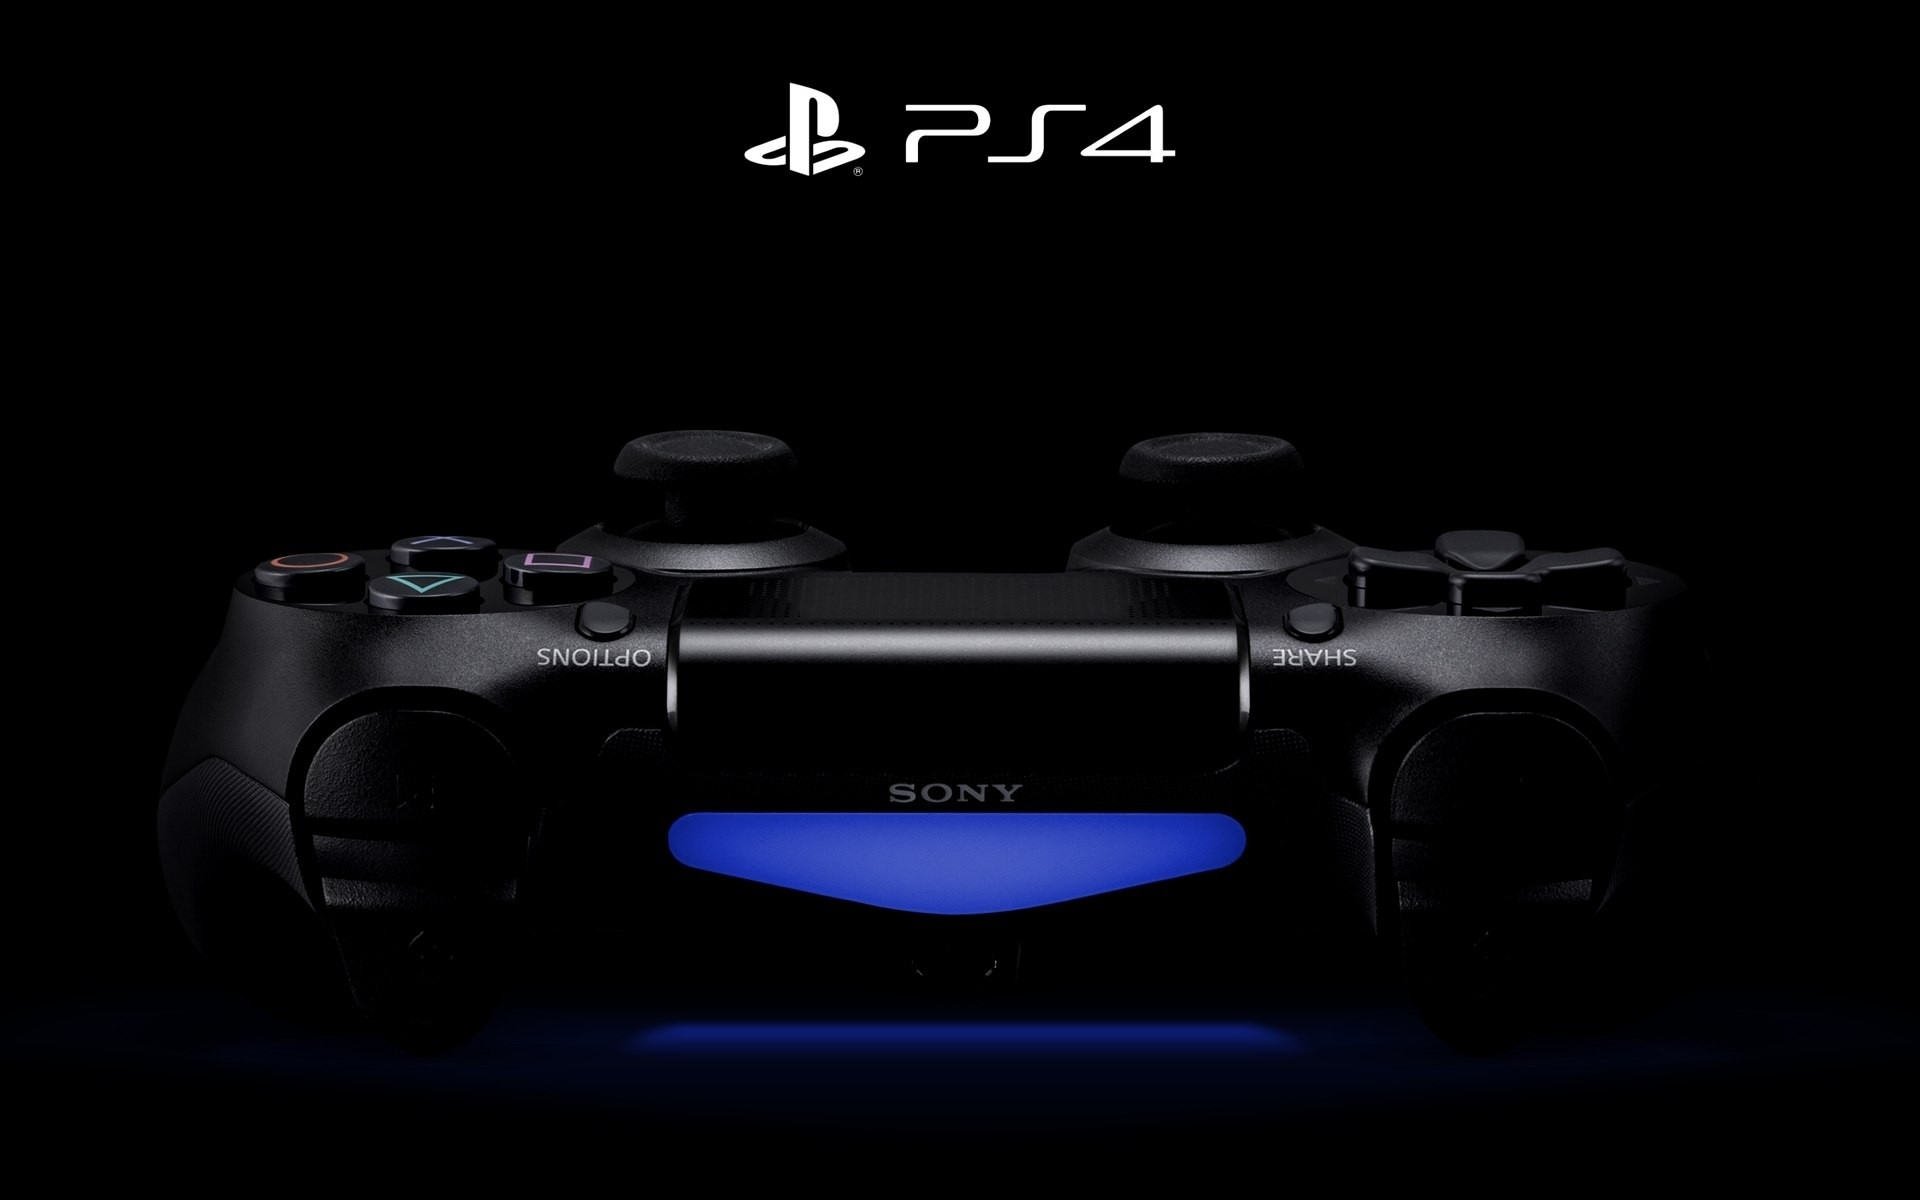 10 playstation 4 hd wallpapers | background images - wallpaper abyss